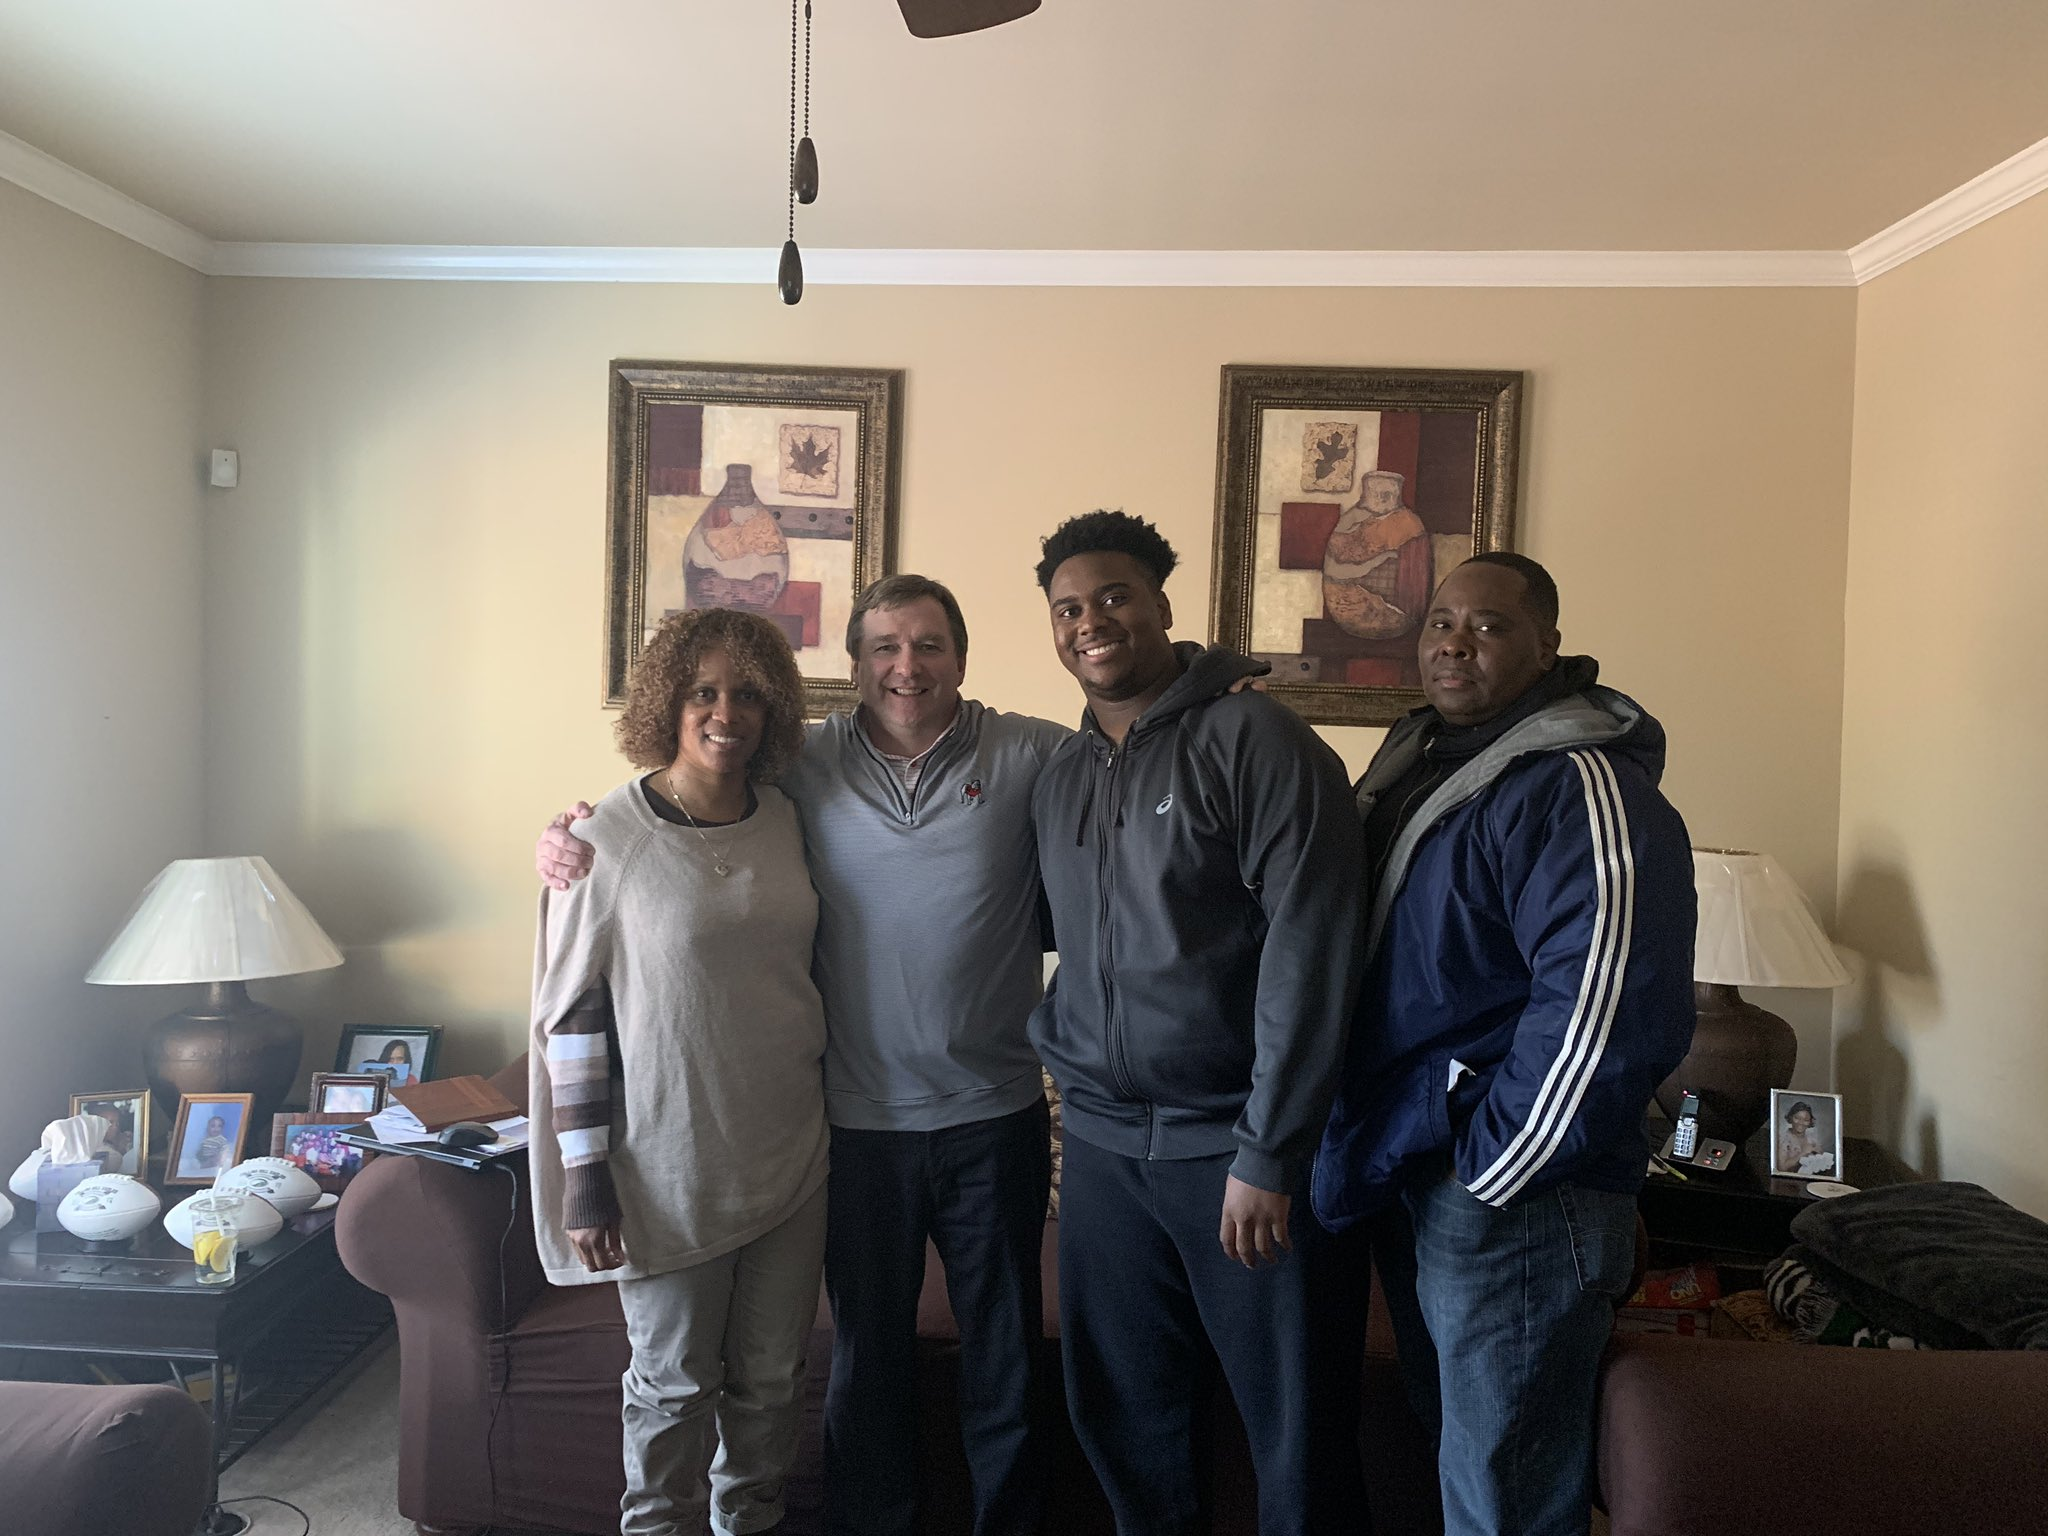 Photo: Cameron Kinney and his family enjoys an in-home visit from UGA head coach Kirby Smart, Twitter